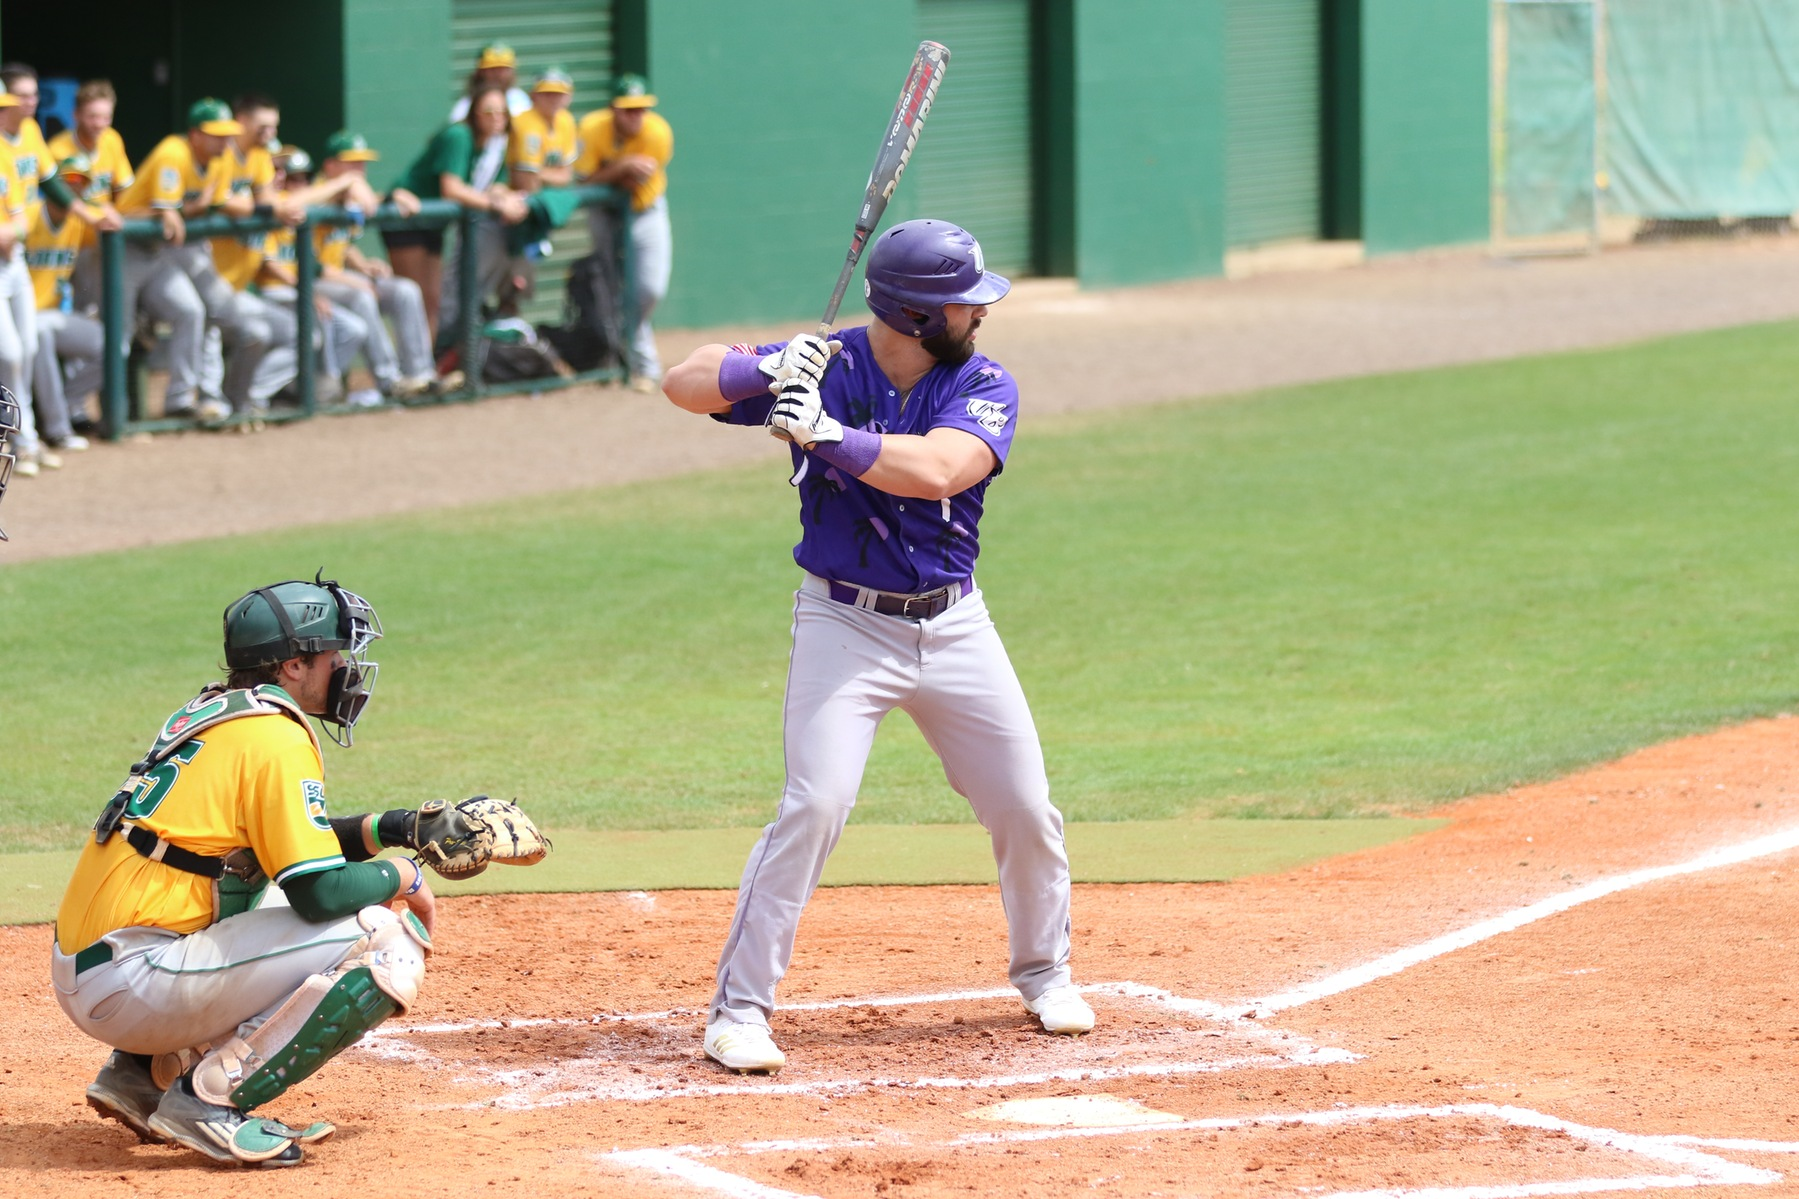 St. Leo Completes Four-Game Sweep Of UB Baseball